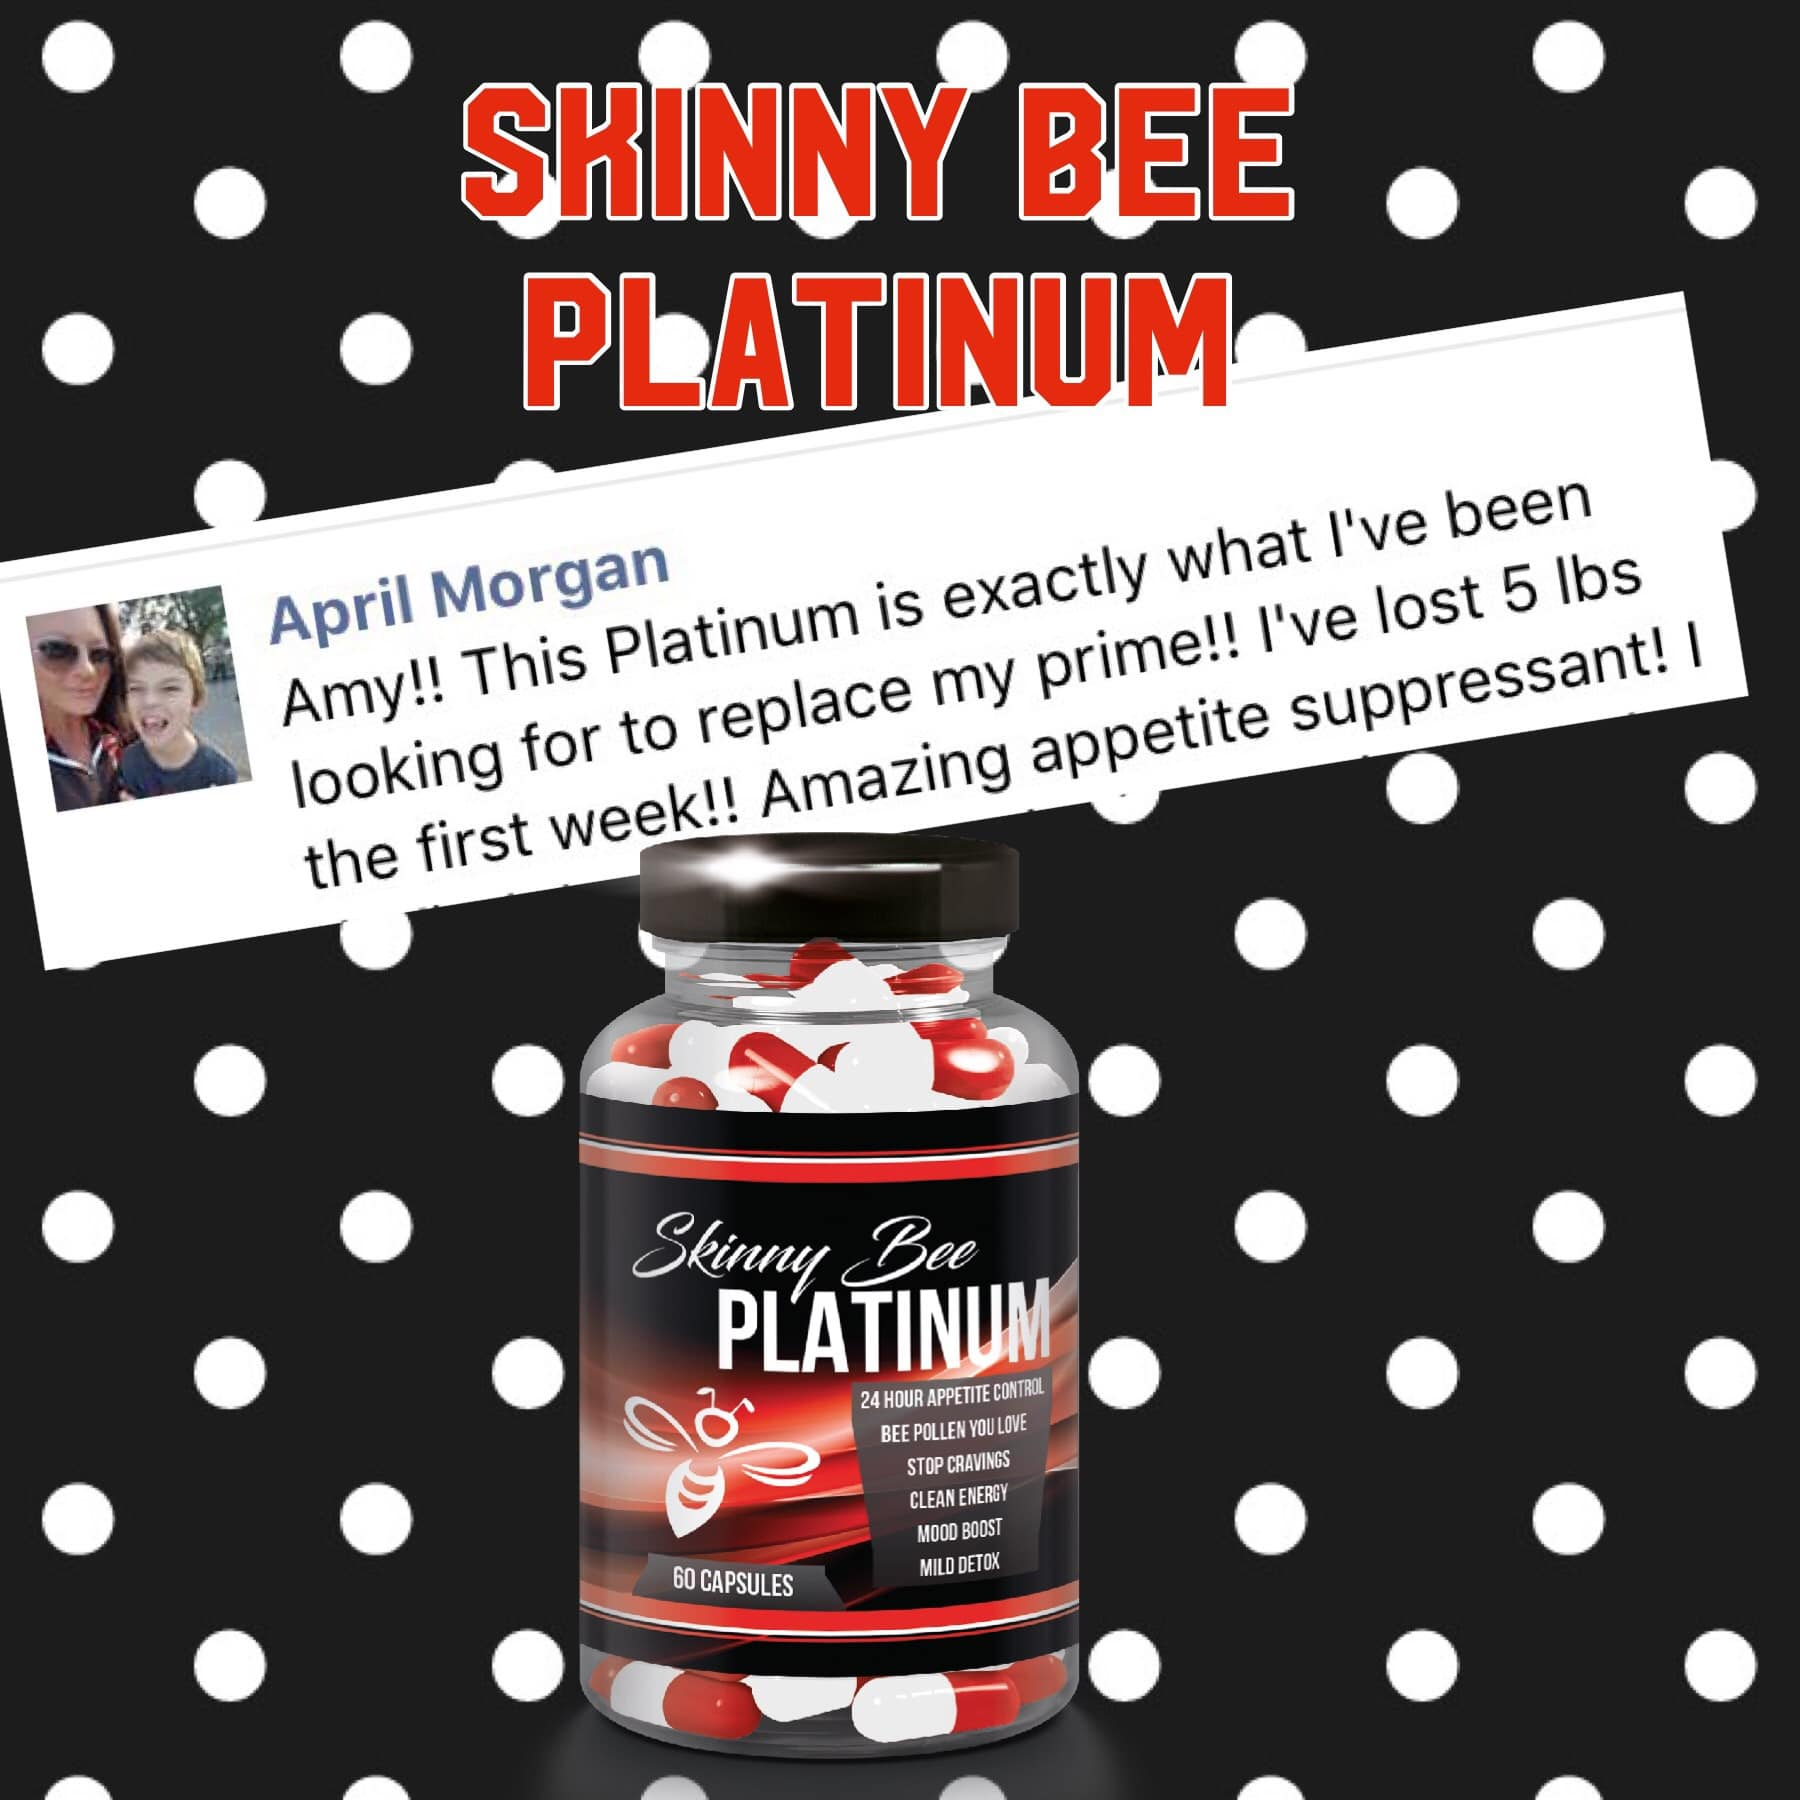 LOSE IT FAST WITH SKINNY BEE PLATINUM